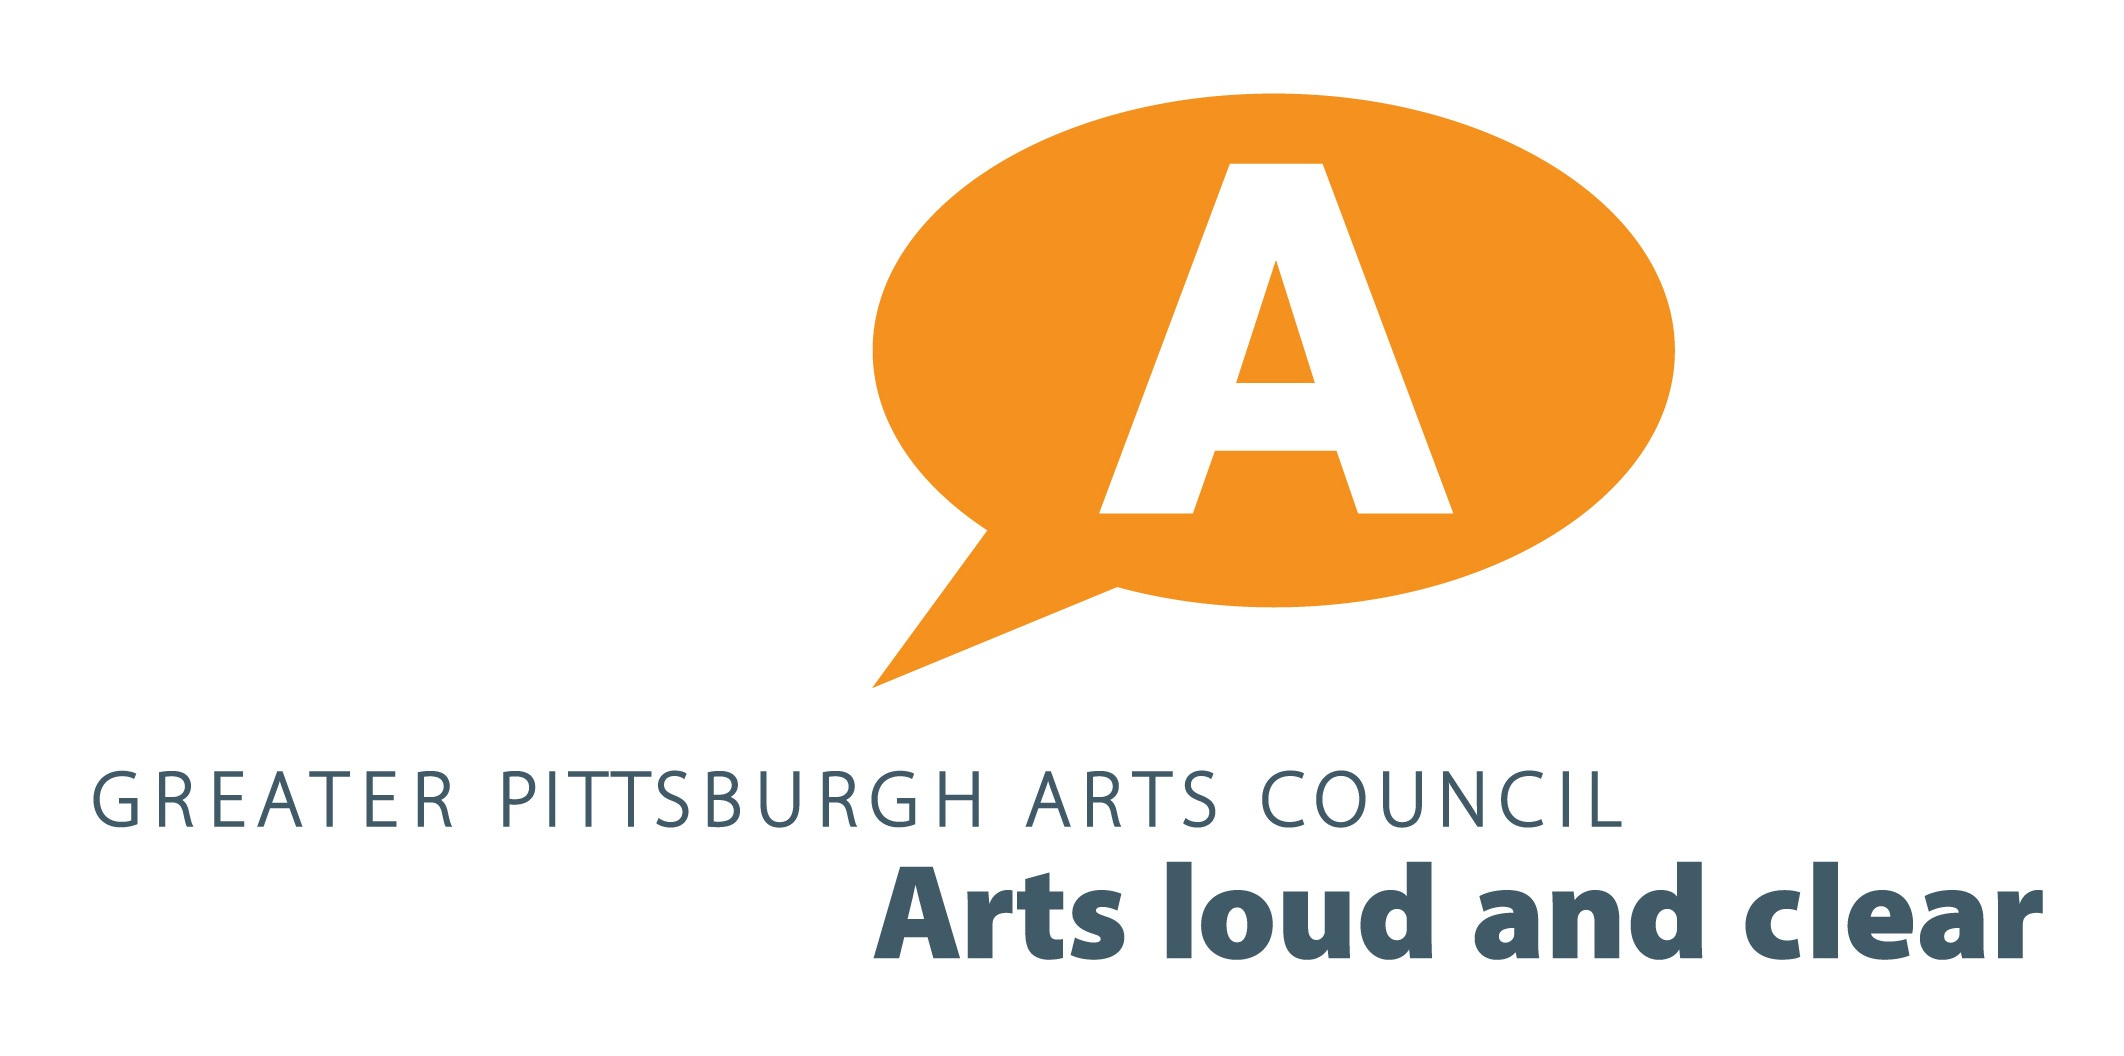 The Greater Pittsburgh Arts Council, Arts Loud and Clear